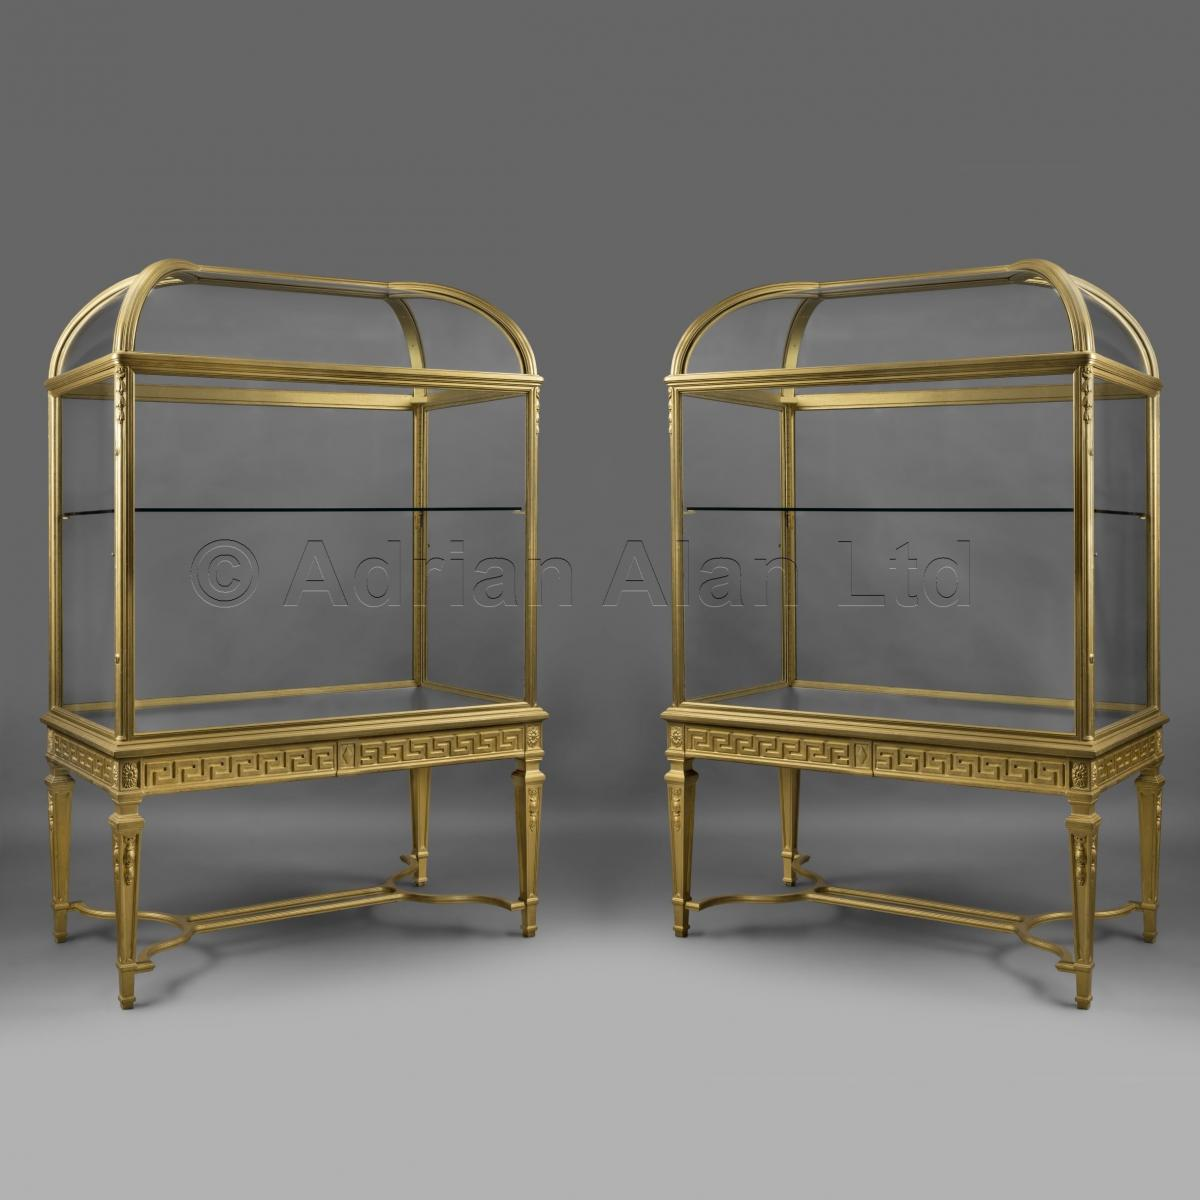 Pair of Giltwood Display Cabinets ©AdrianAlanLtd